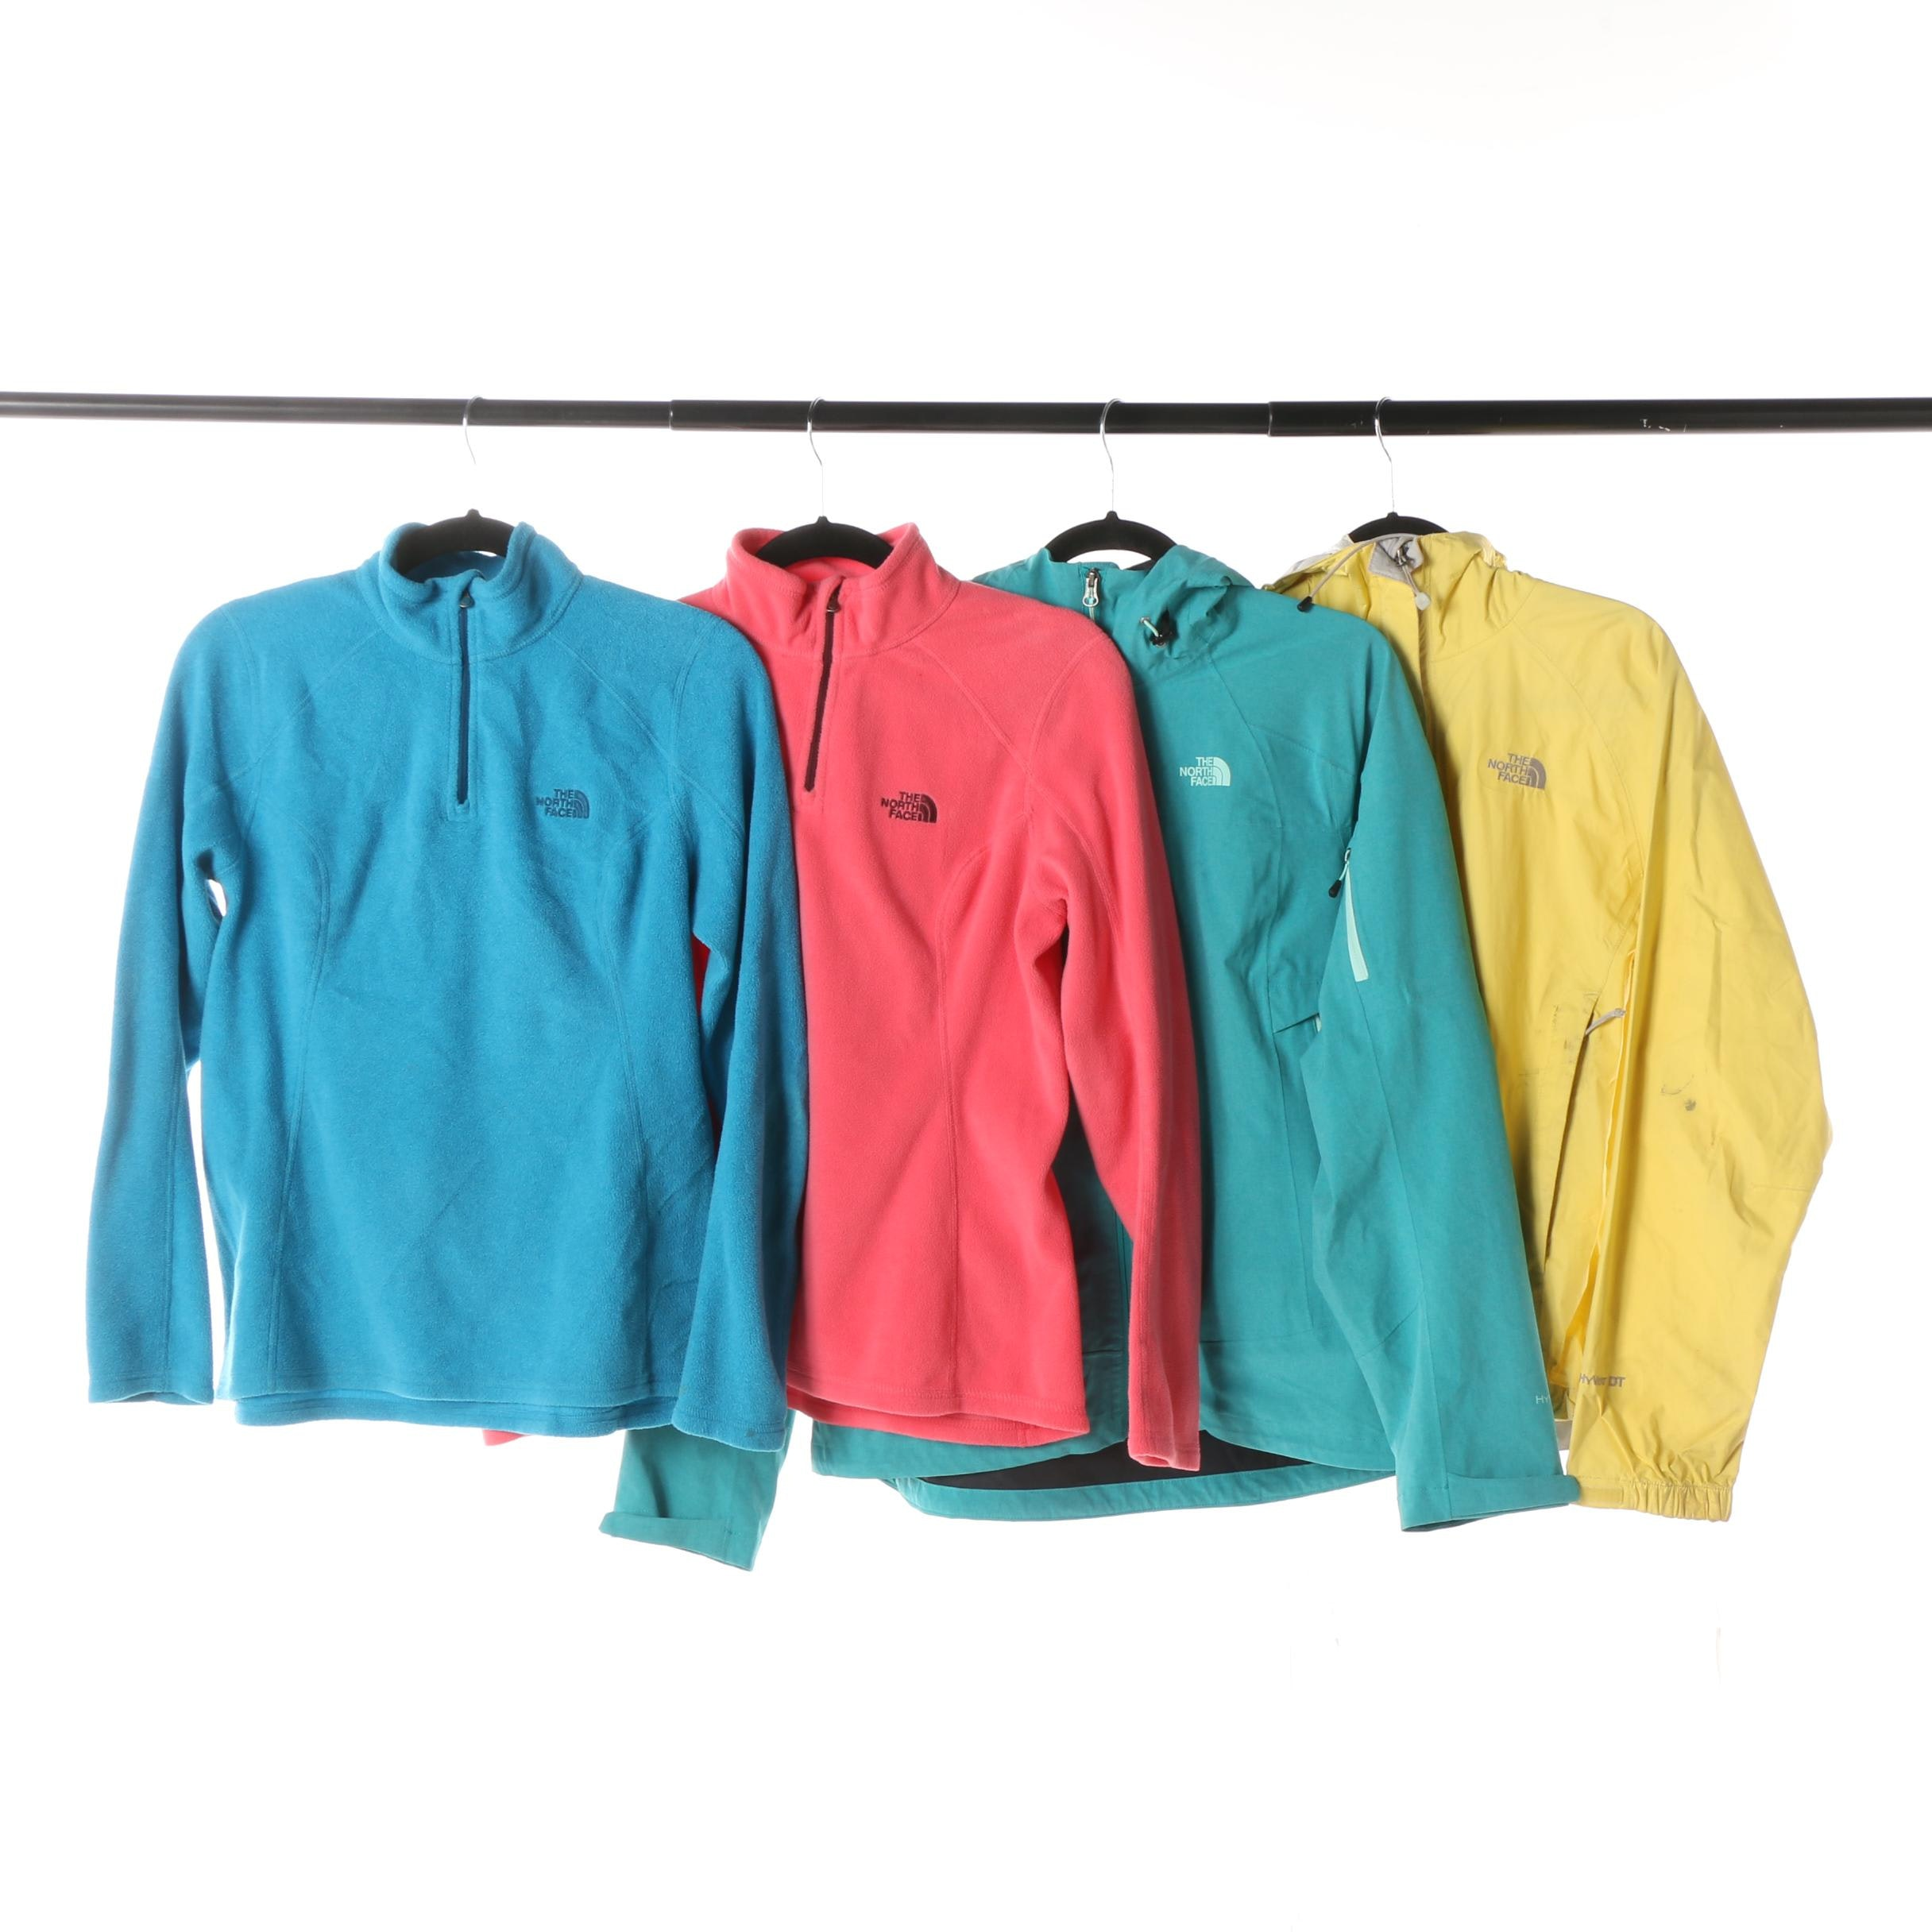 Women's The North Face Fleece Pullovers and Windbreaker Jackets